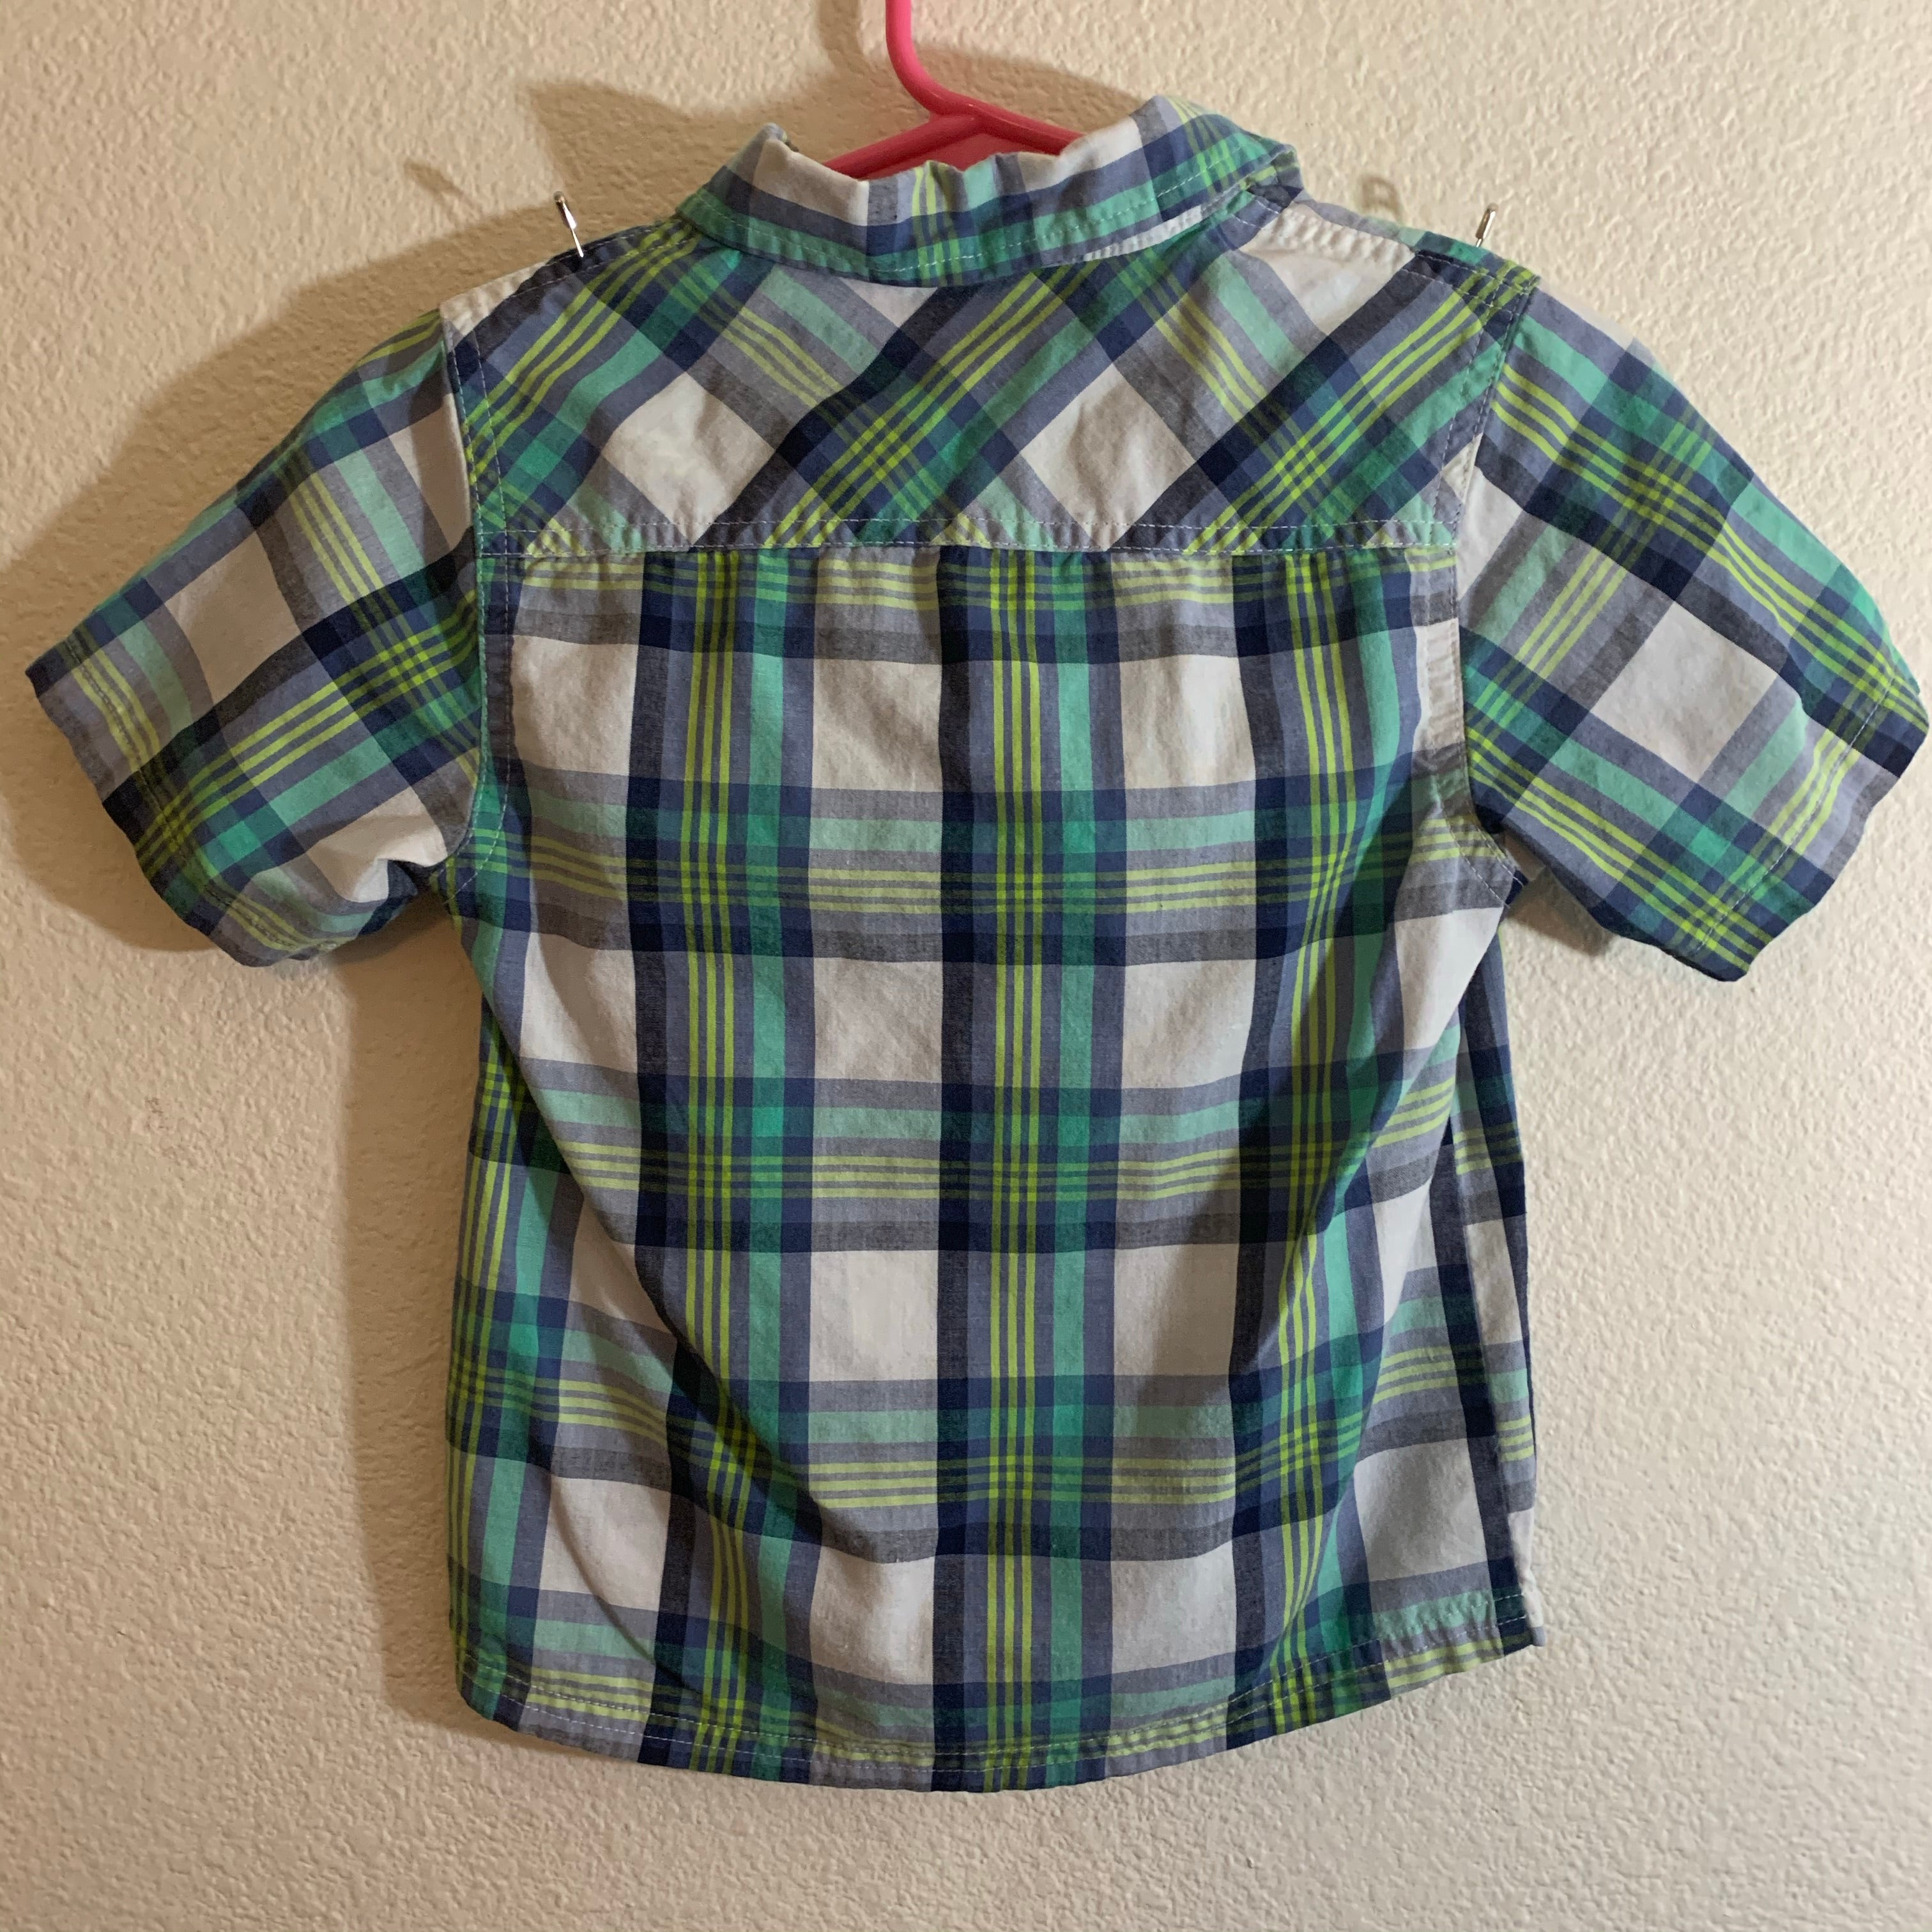 FRENCH TOAST Boy's Size 4T Button Up Short Sleeve